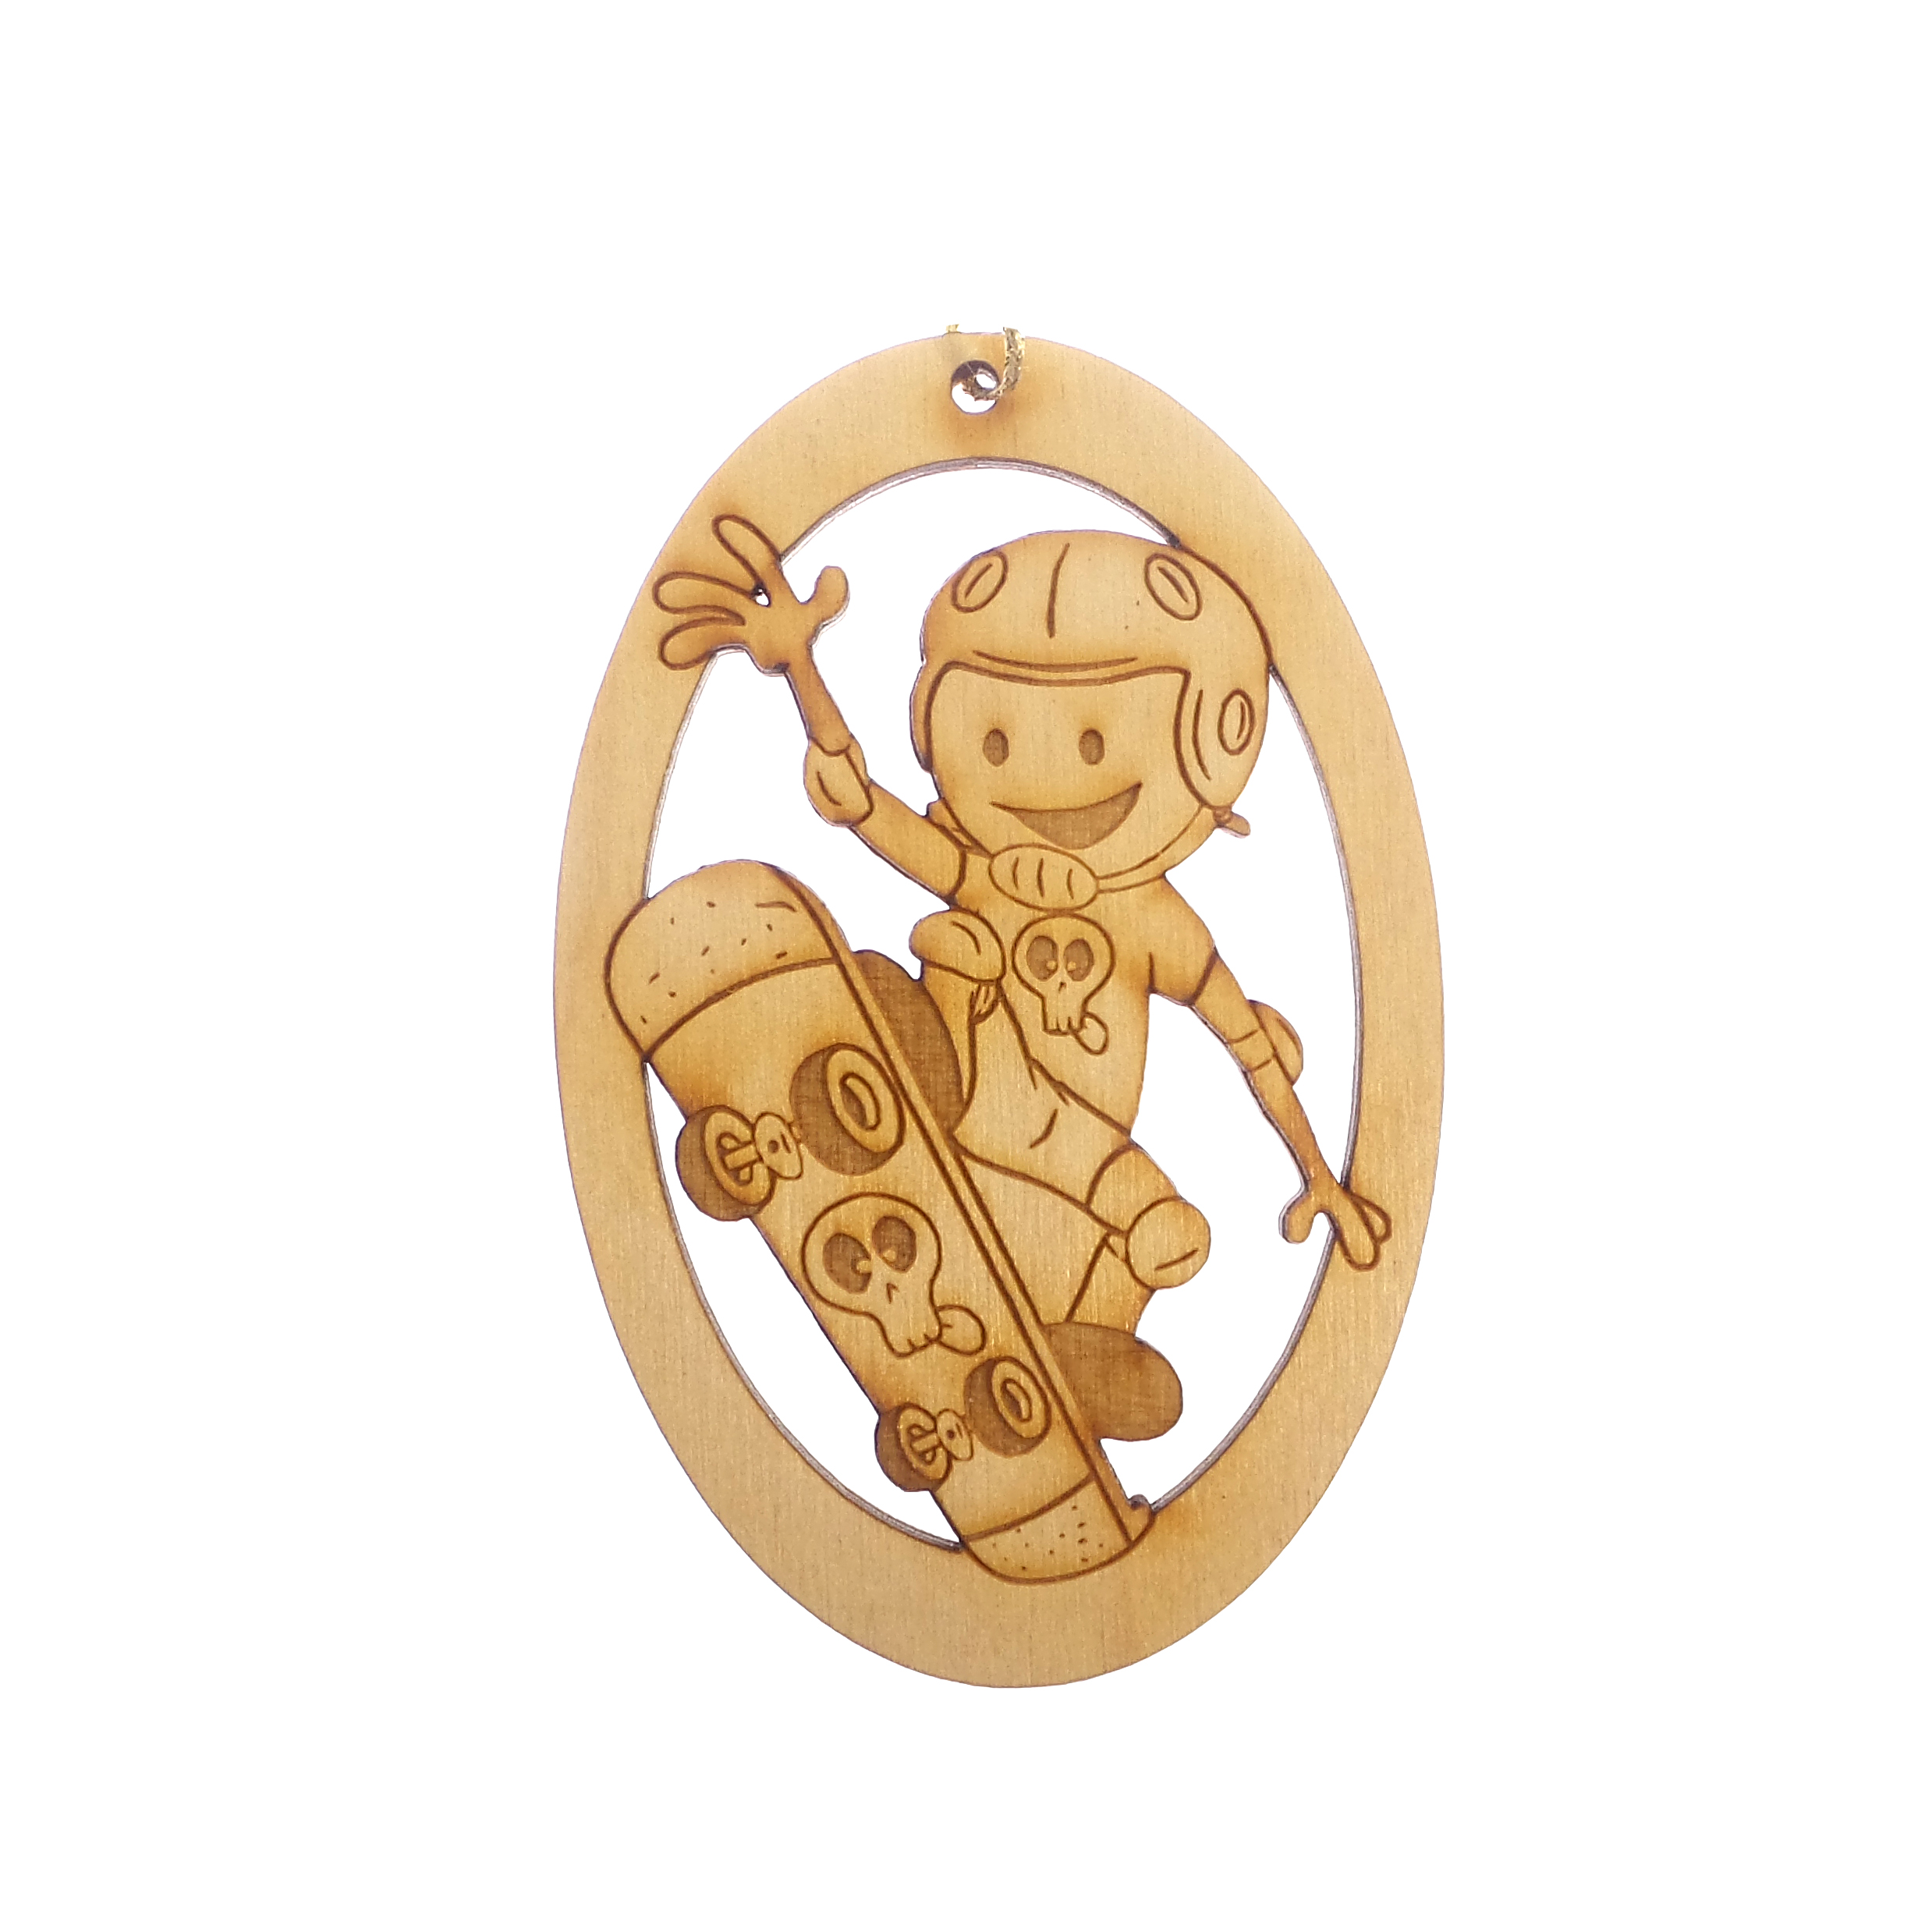 Personalized Gift for Skateboarder